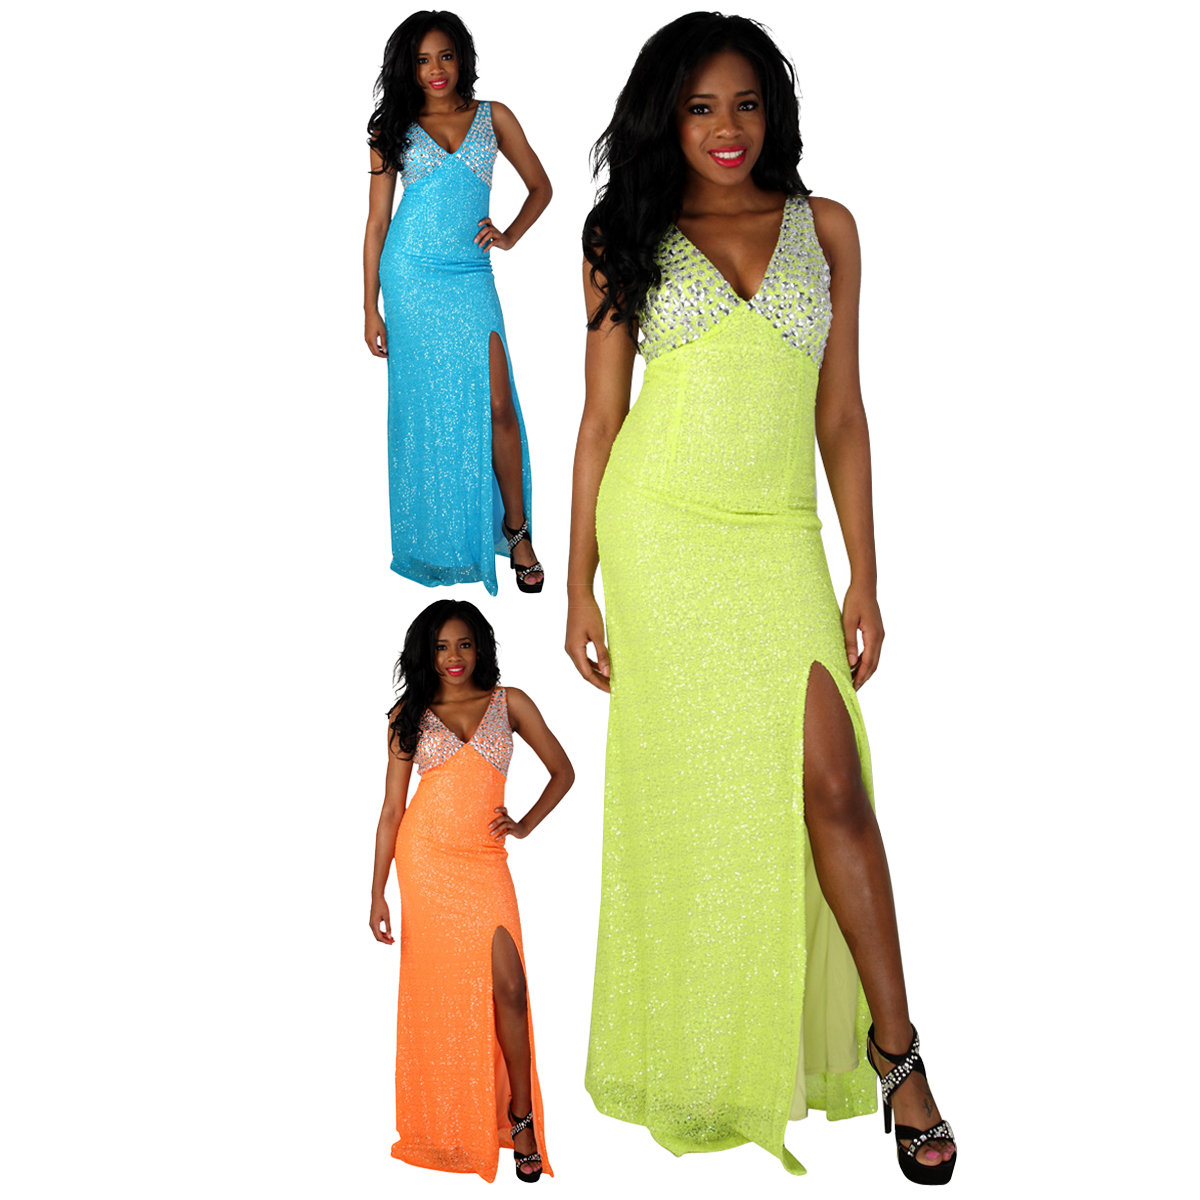 Shop our Collection of Women's Maxi Dress Dresses at shopnow-ahoqsxpv.ga for the Latest Designer Brands & Styles. FREE SHIPPING AVAILABLE! You have size preferences associated with your profile. I.N.C. Tie-Dyed Maxi Dress, Created for Macy's.